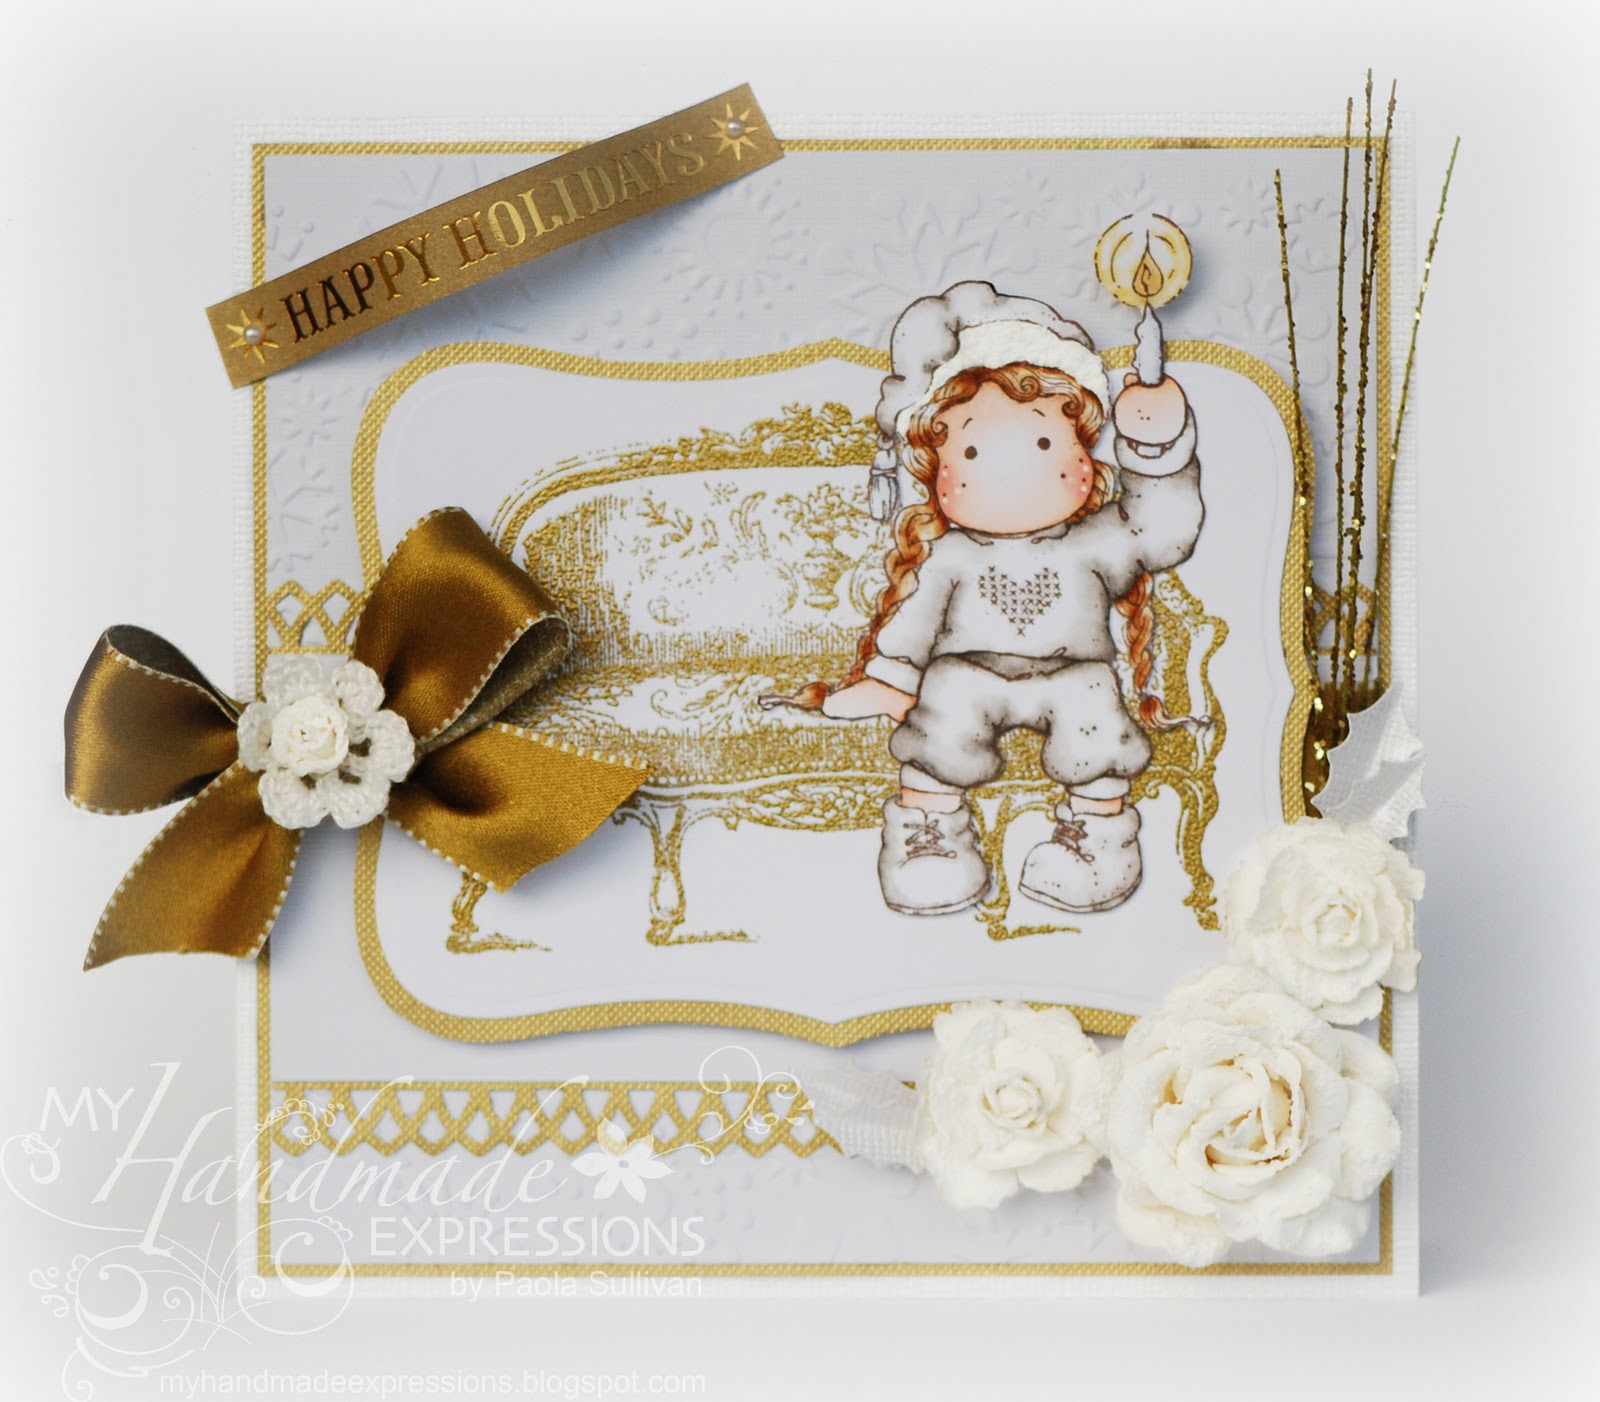 My Handmade Expressions: White And Gold Christmas